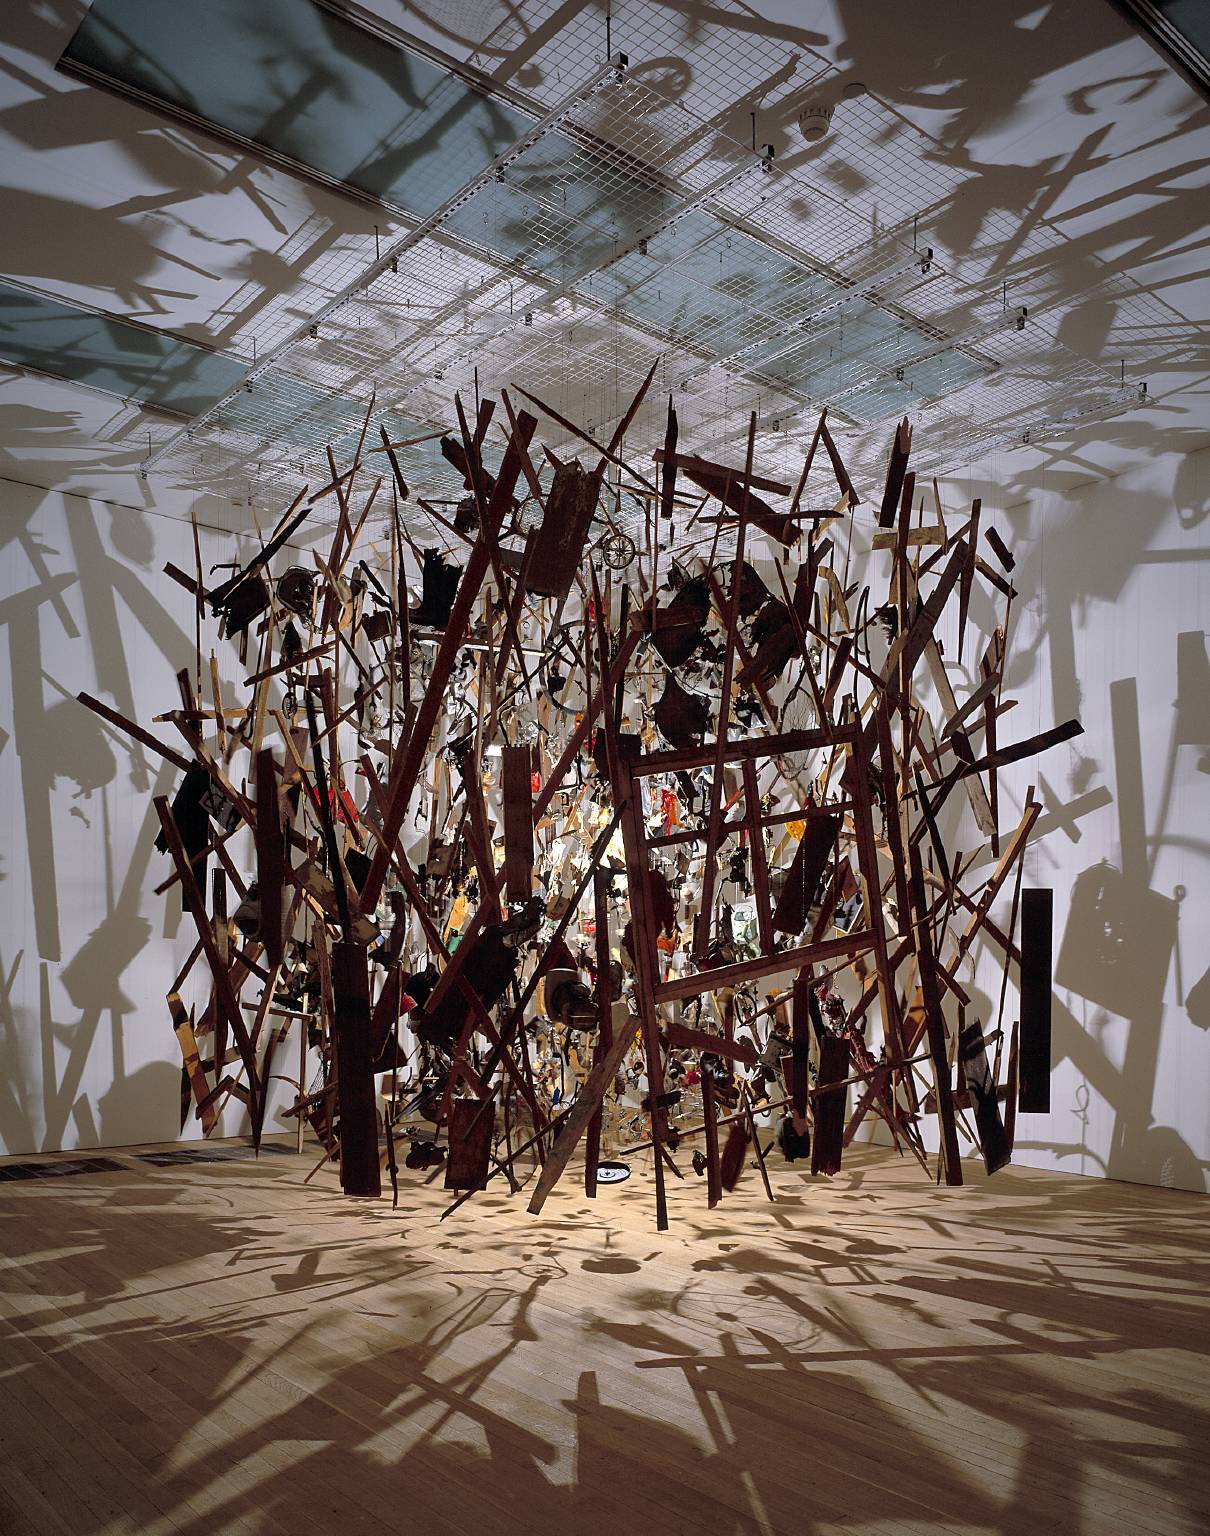 Cornelia Parker: Cold Dark Matter: An Exploded View, 1991 The visual cacophony that Parker creates in this mixed media installation is stunning; we particularly like her use of light and shadow to expand the piece's boundaries past their physical edges. If you stumbled across this work in a museum, how long do you think you'd spend looking at it?